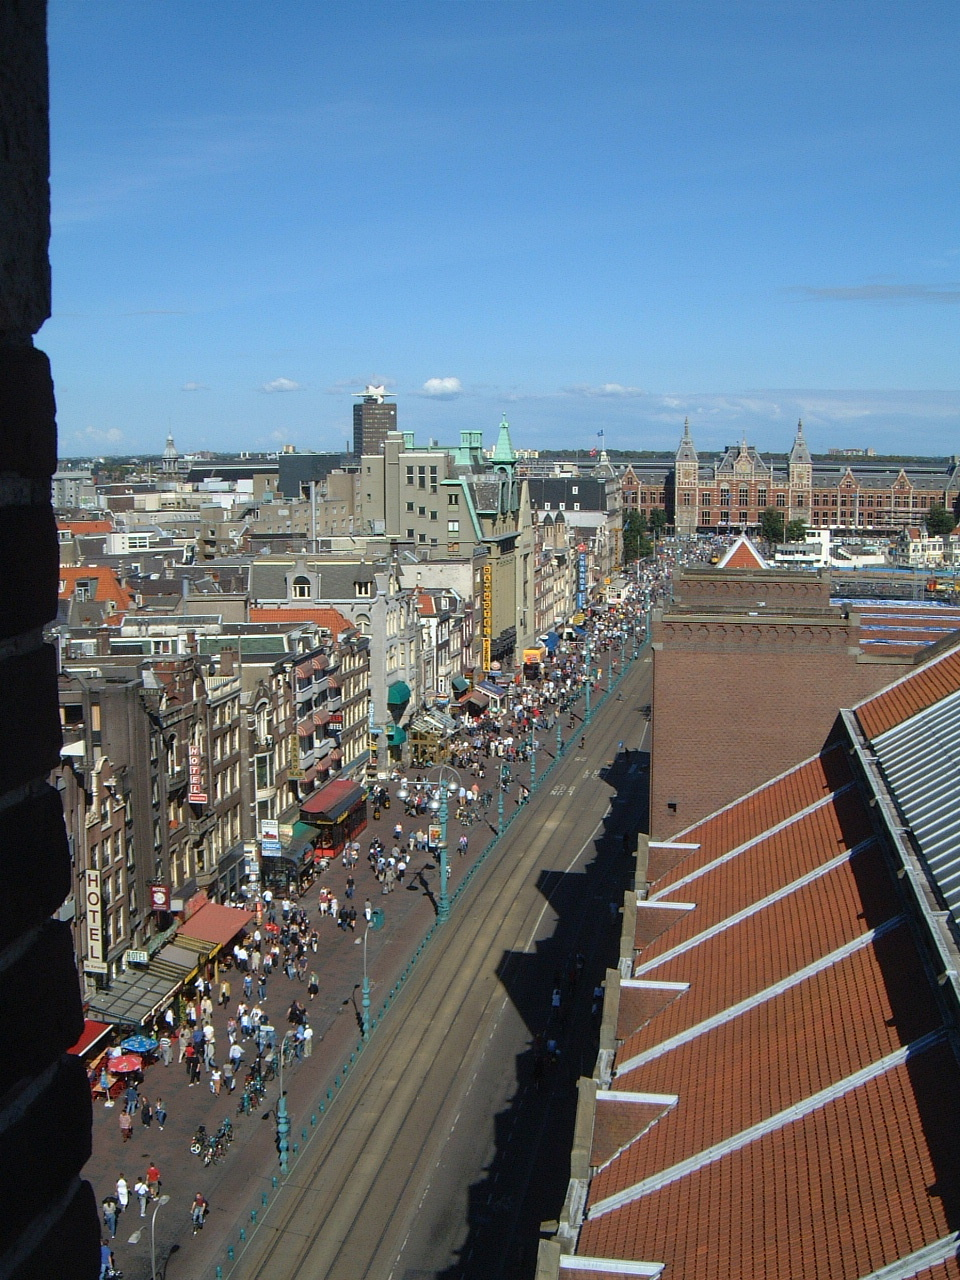 maartent amsterdam cityscape station summer shell city buildings roofs crowd people